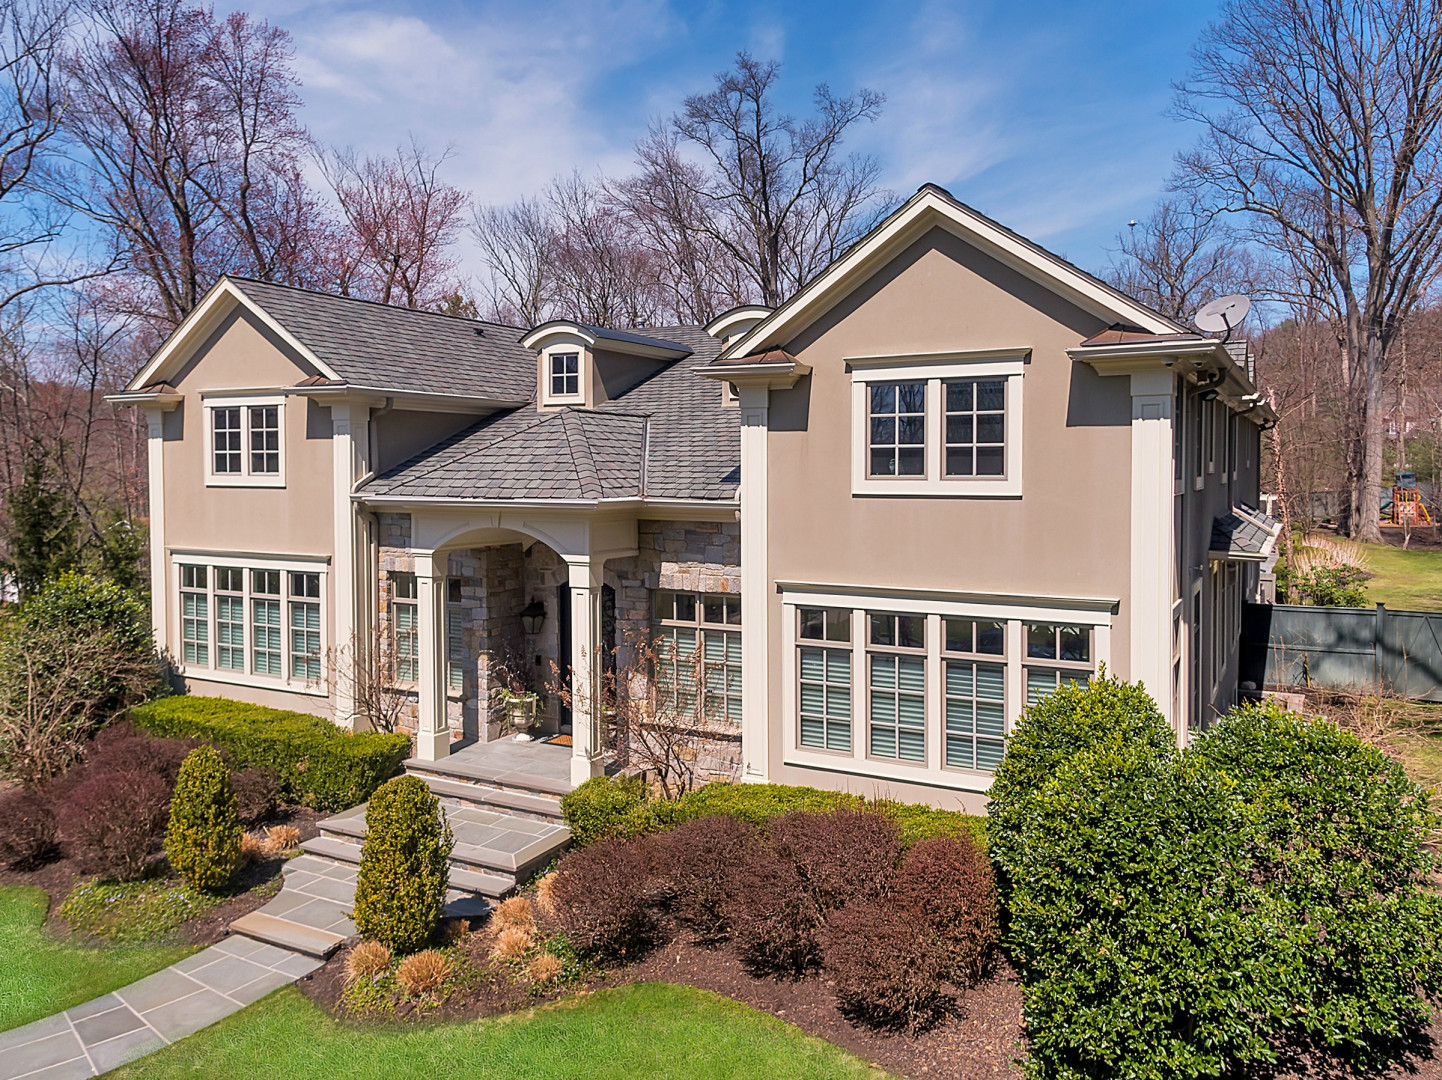 Single Family Home for Sale at Spectacular Custom Masterpiece 31 Hampshire Hill Rd Upper Saddle River, 07458 United States